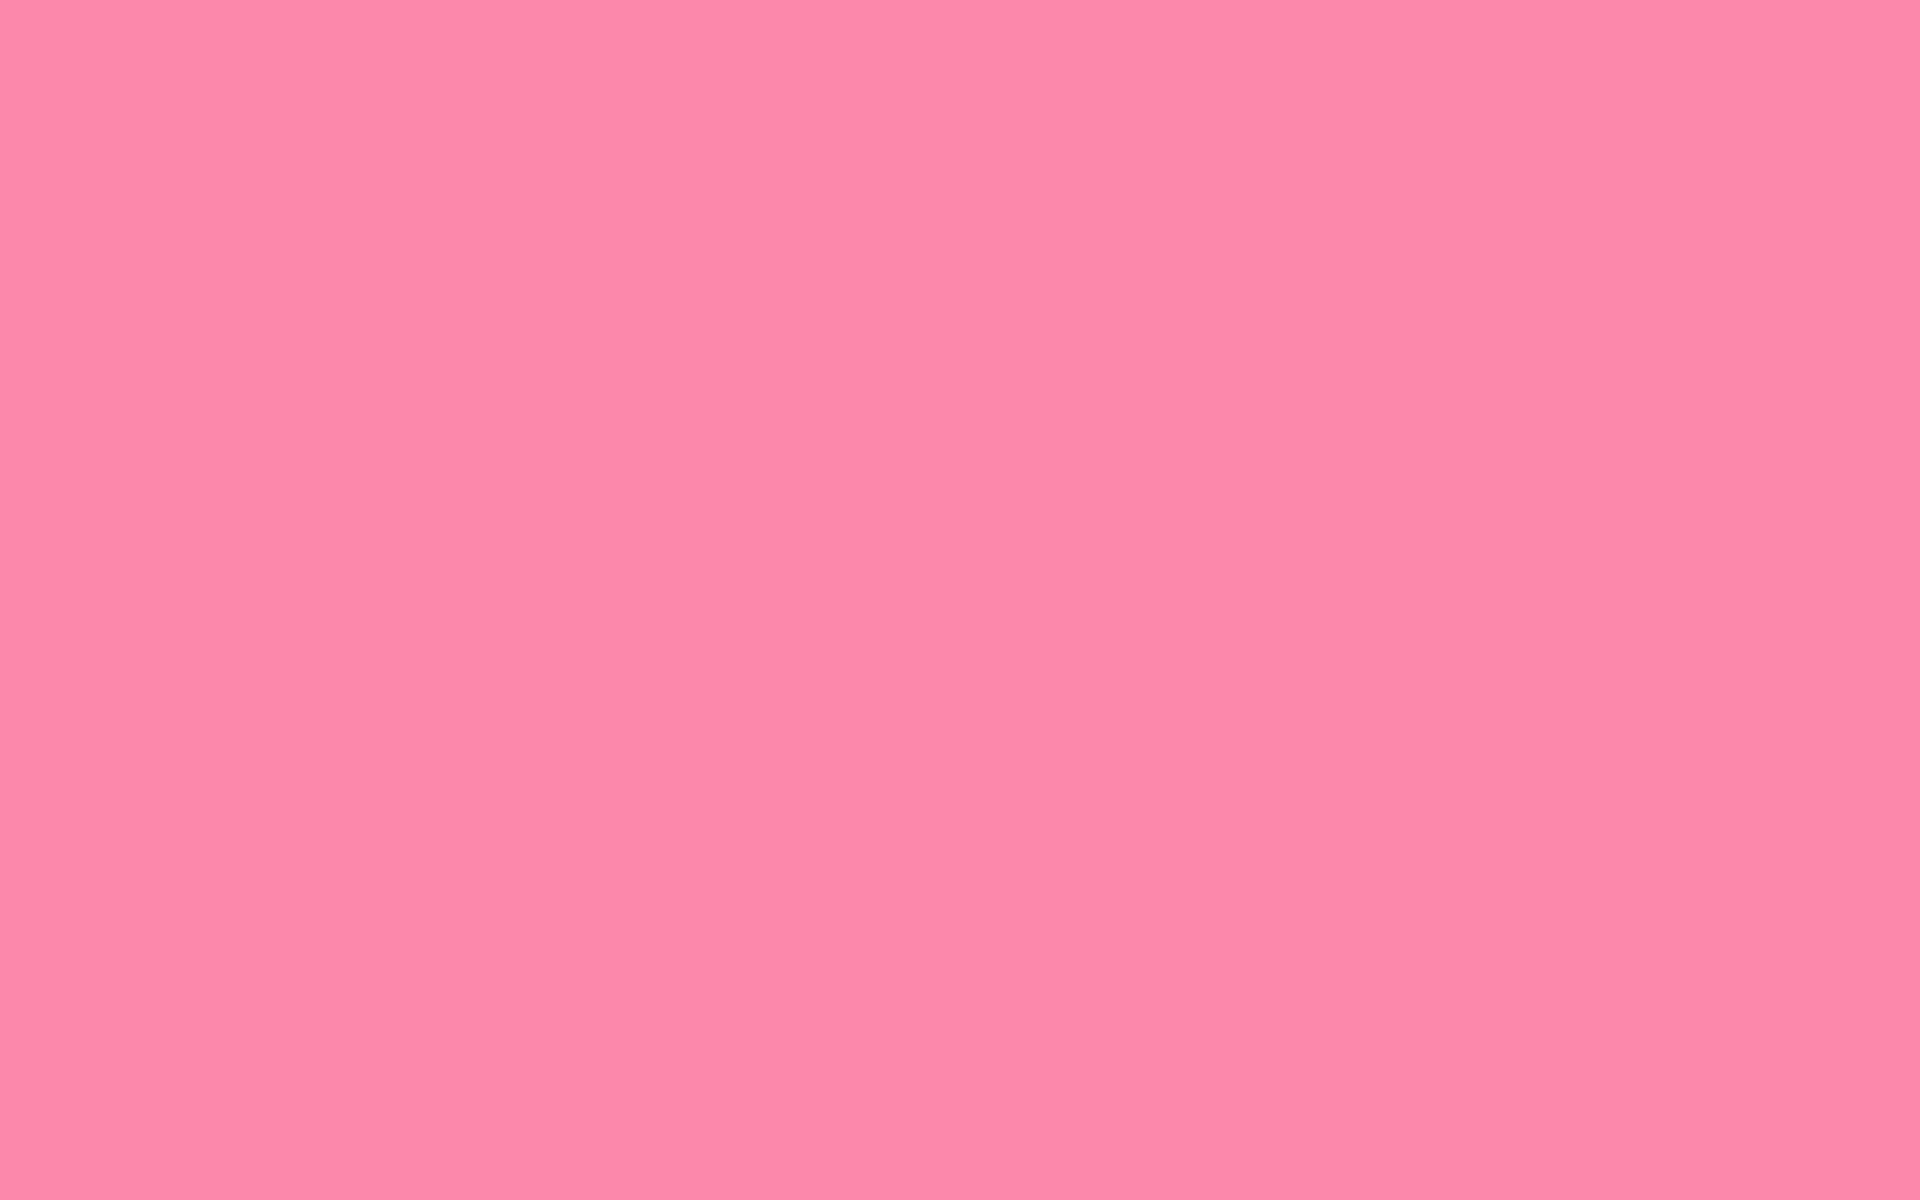 1920x1200 Tickle Me Pink Solid Color Background